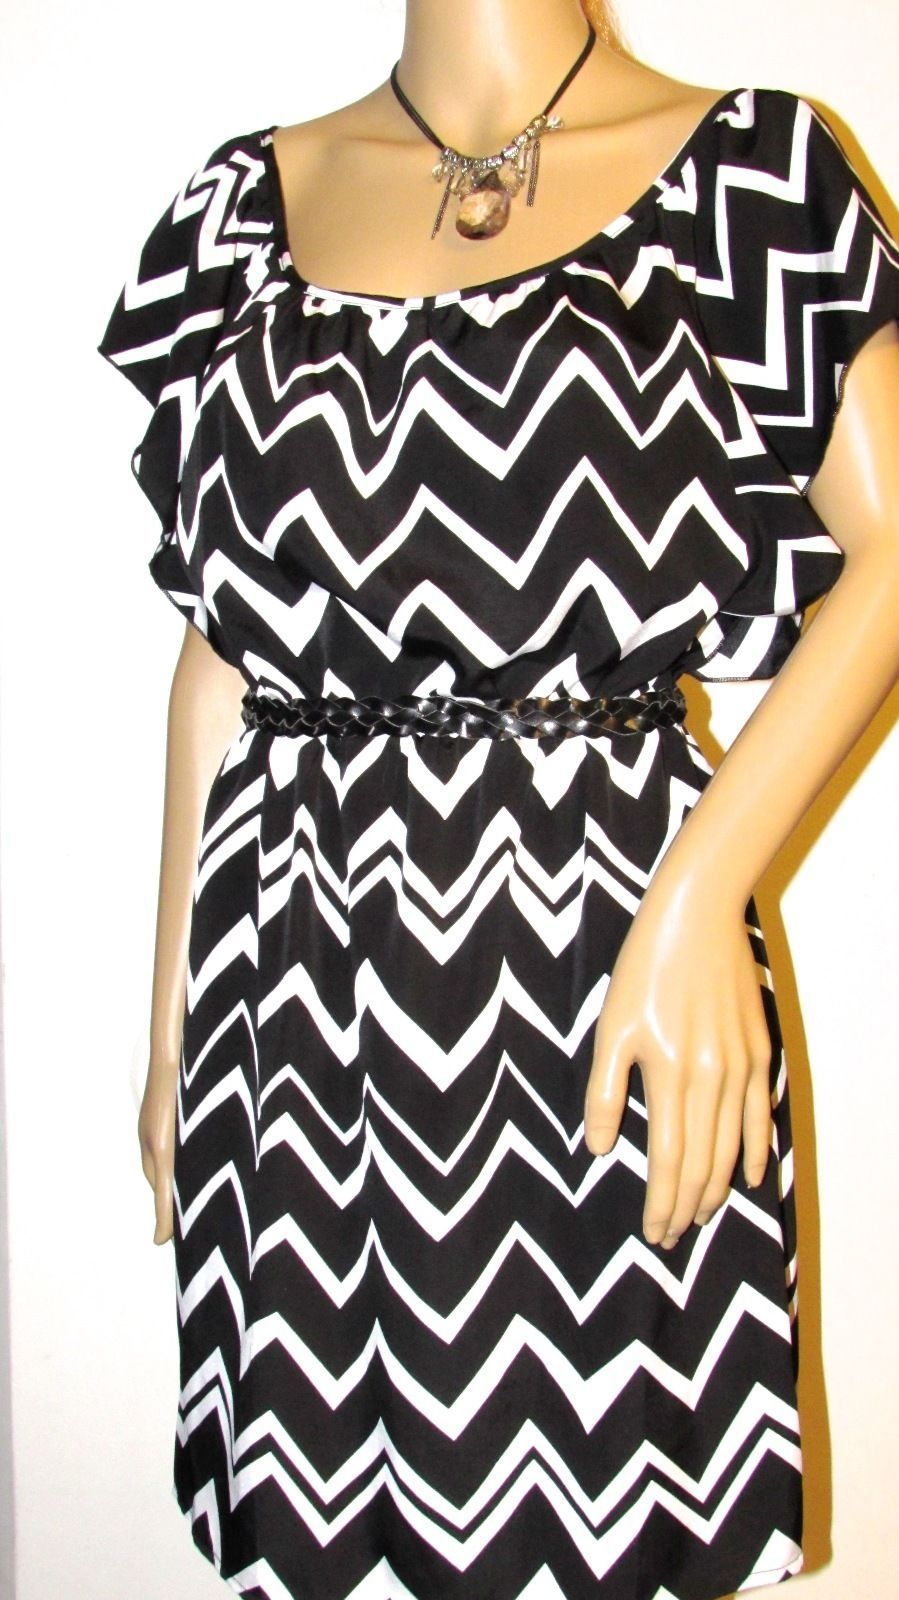 6 Degrees Blk/Wht Multi-Color Short Sleeve Dress Boat Neck Style#IJD2511-GGC M